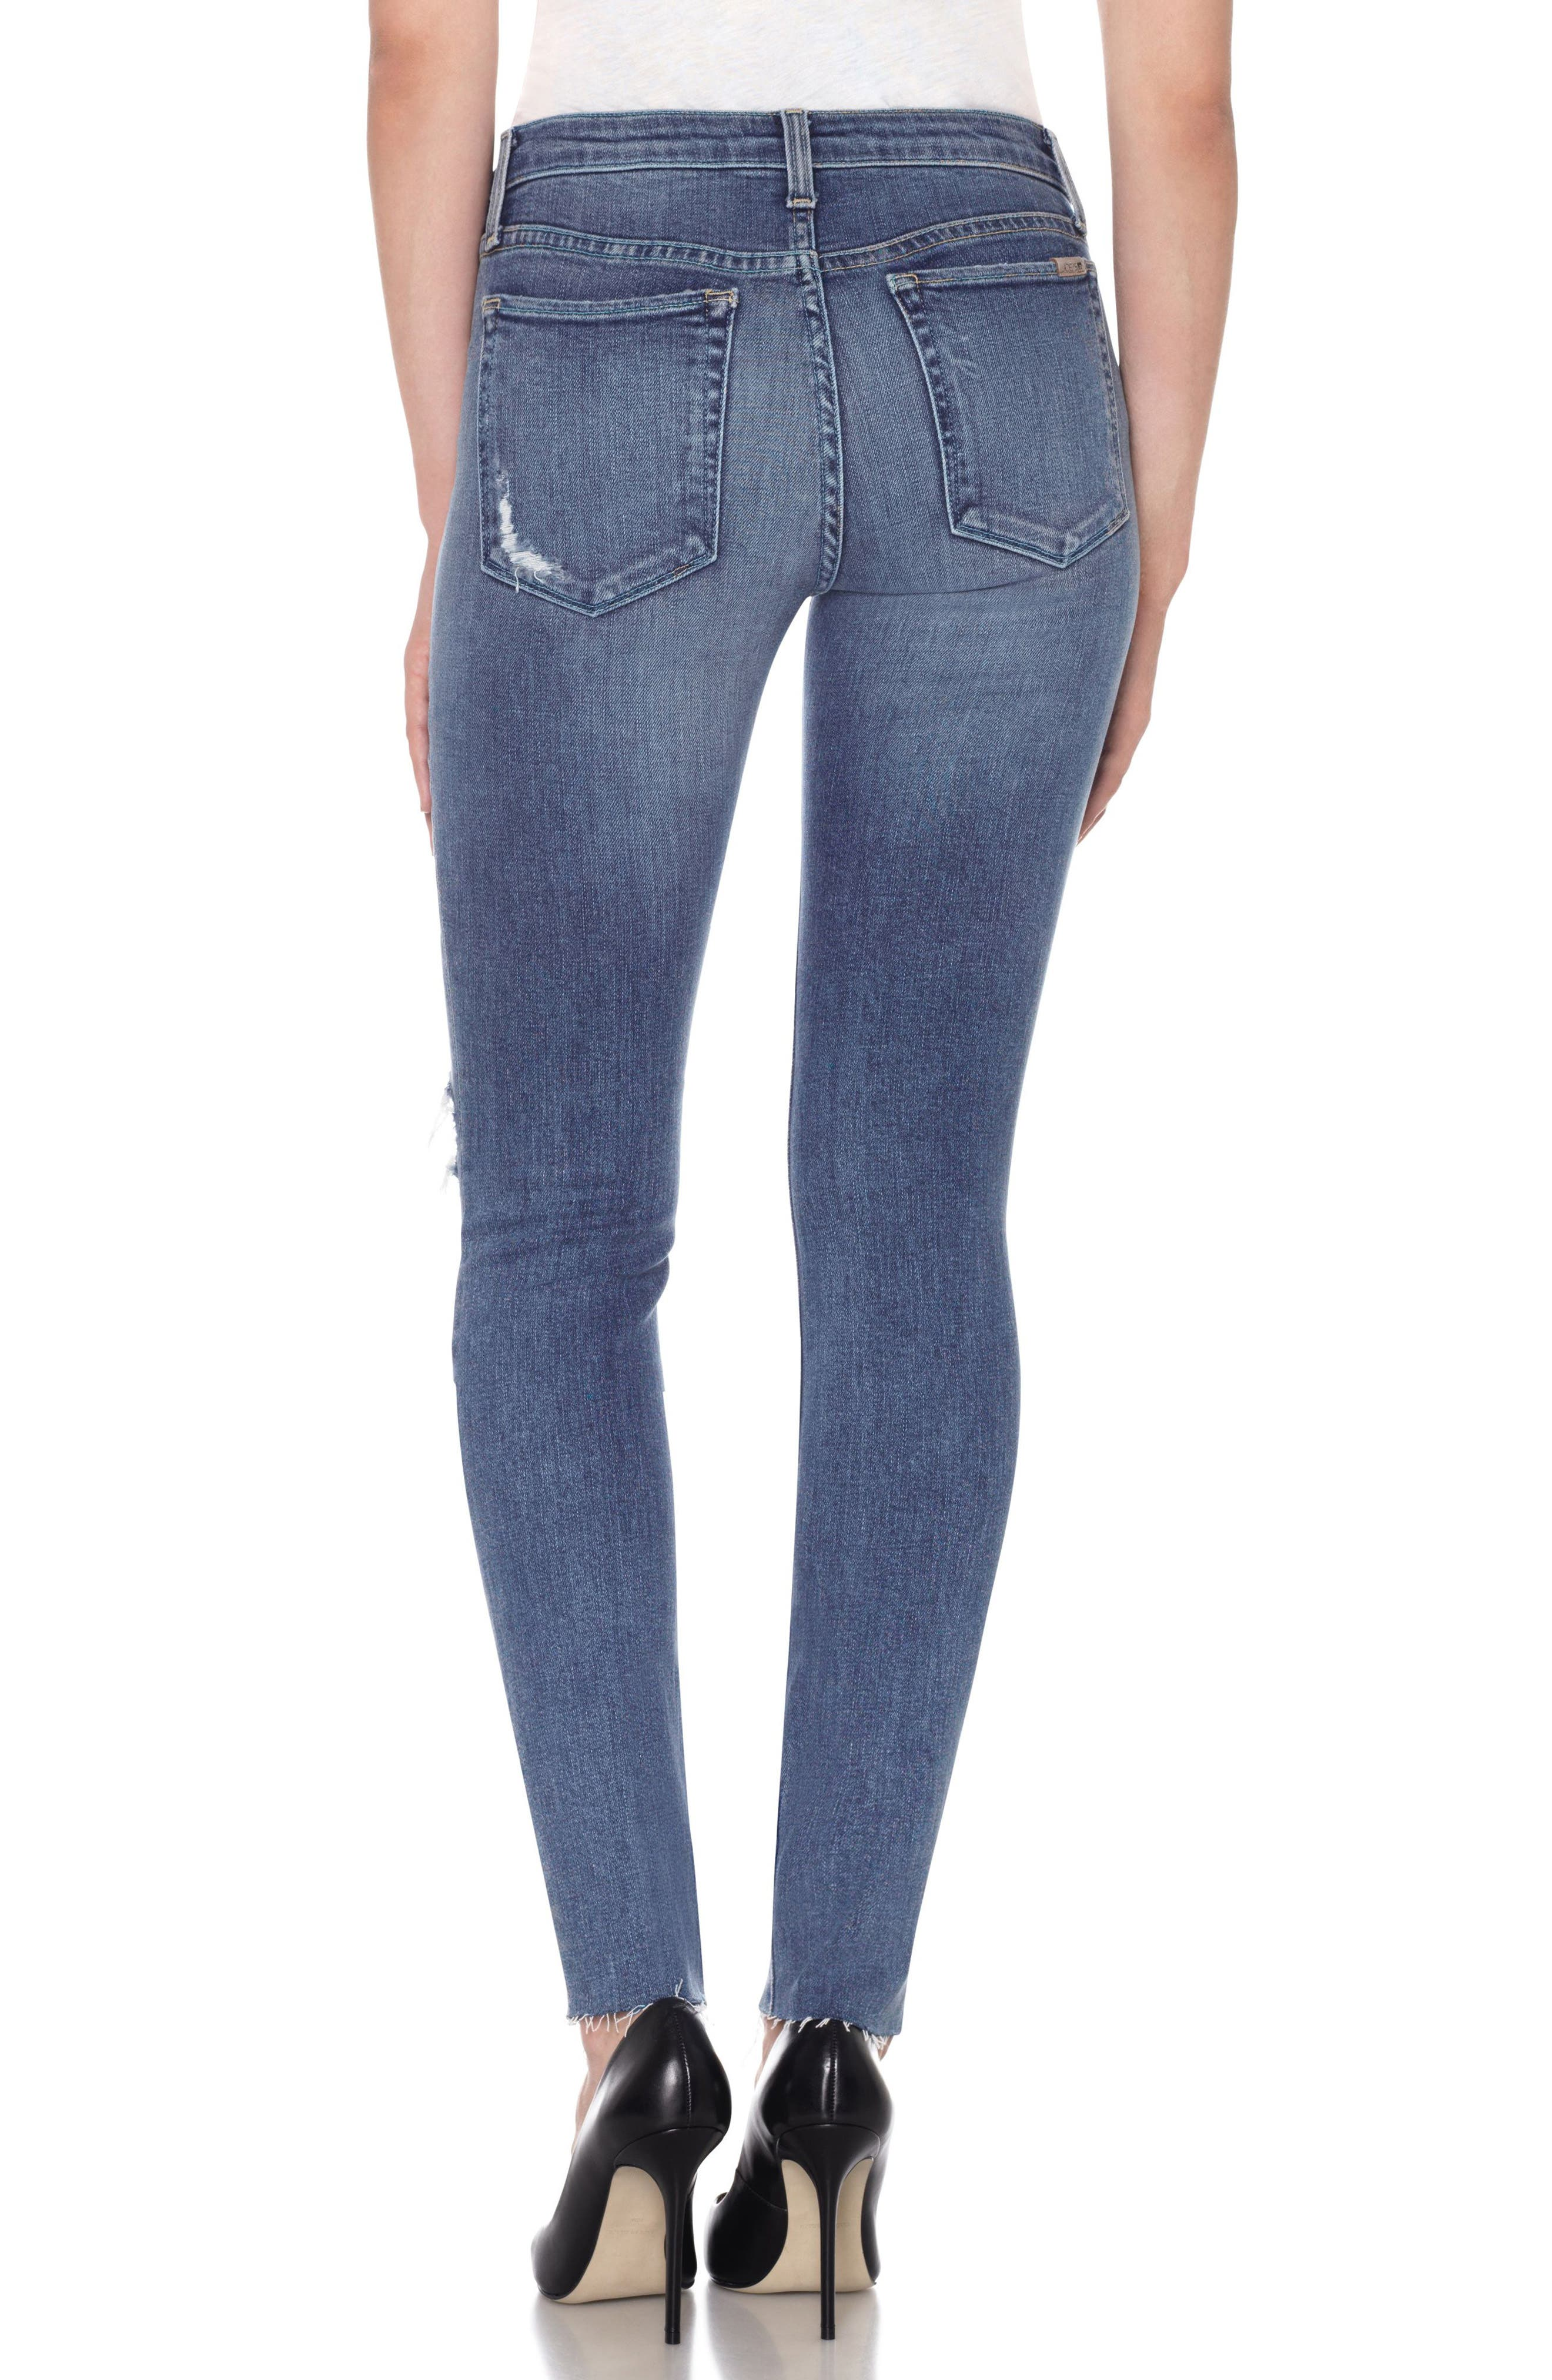 Icon High Waist Skinny Jeans,                             Alternate thumbnail 2, color,                             415